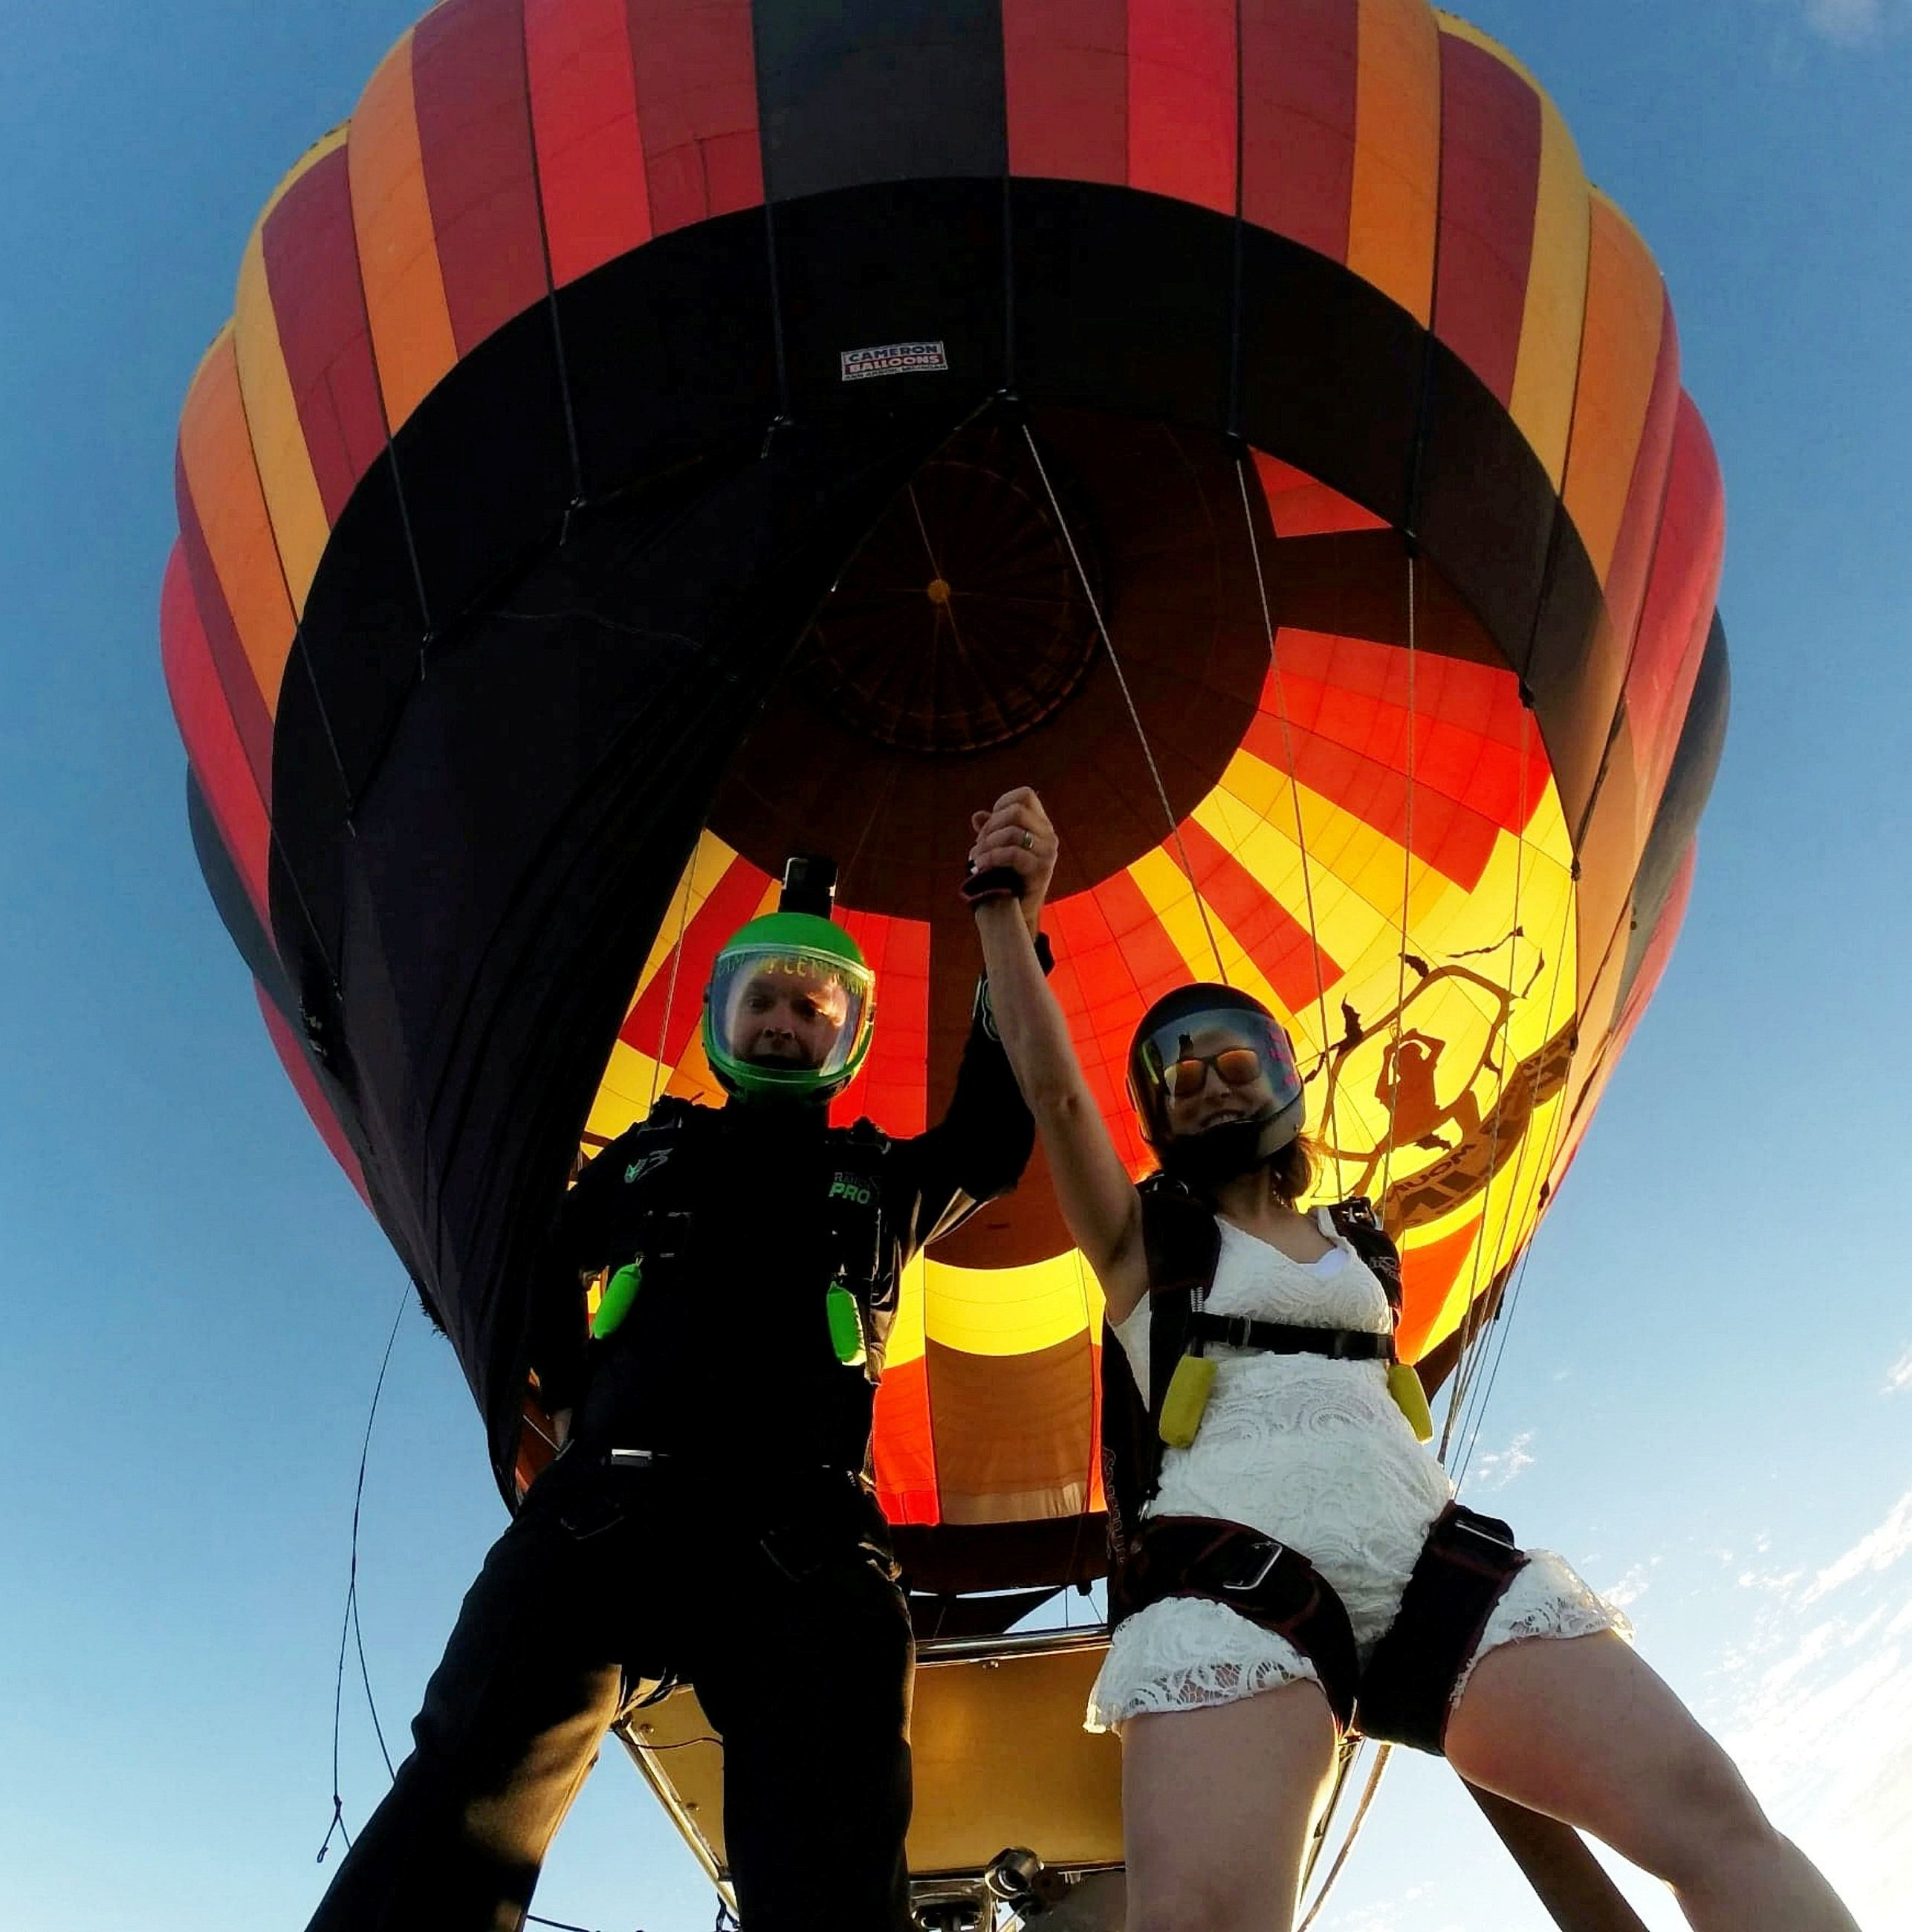 Daredevil Couple Got Married In Hot Air Balloon Followed By A Sky